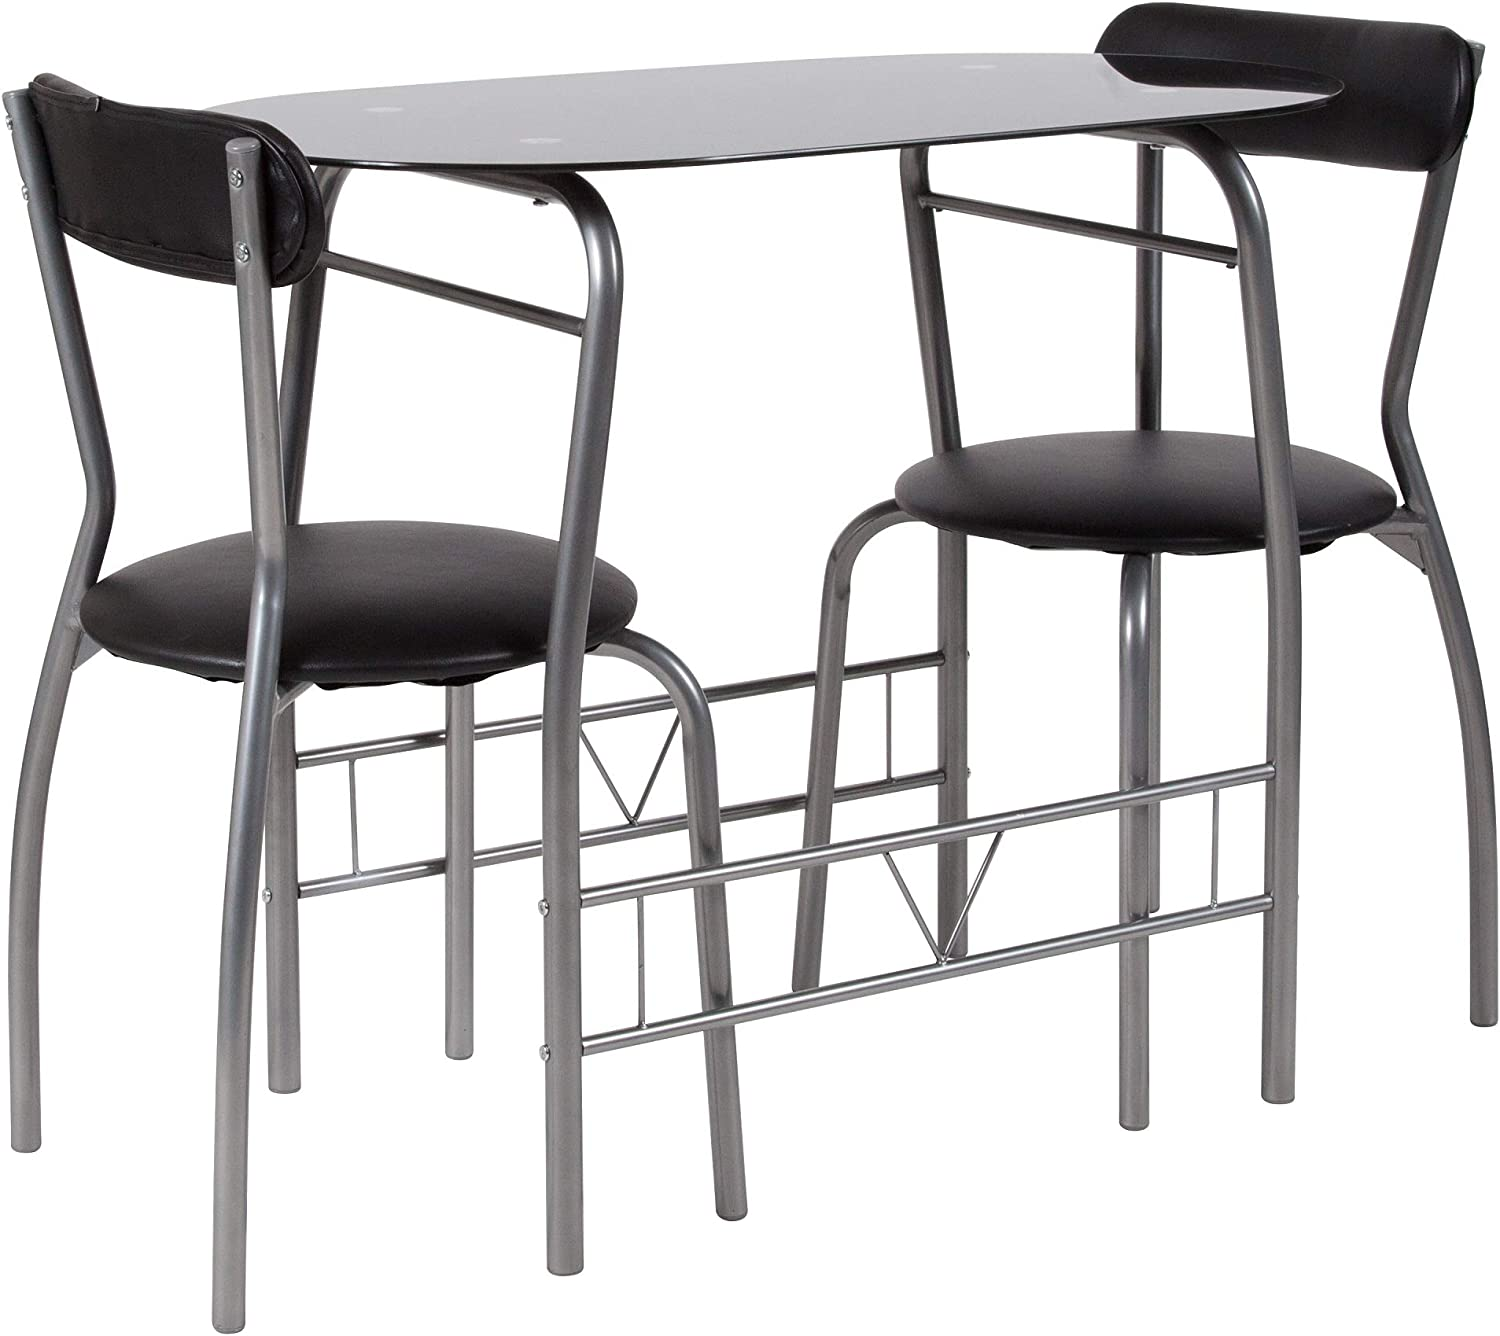 Amazon.com - F&F Furniture Group Set of 10 Silver and Black Bistro